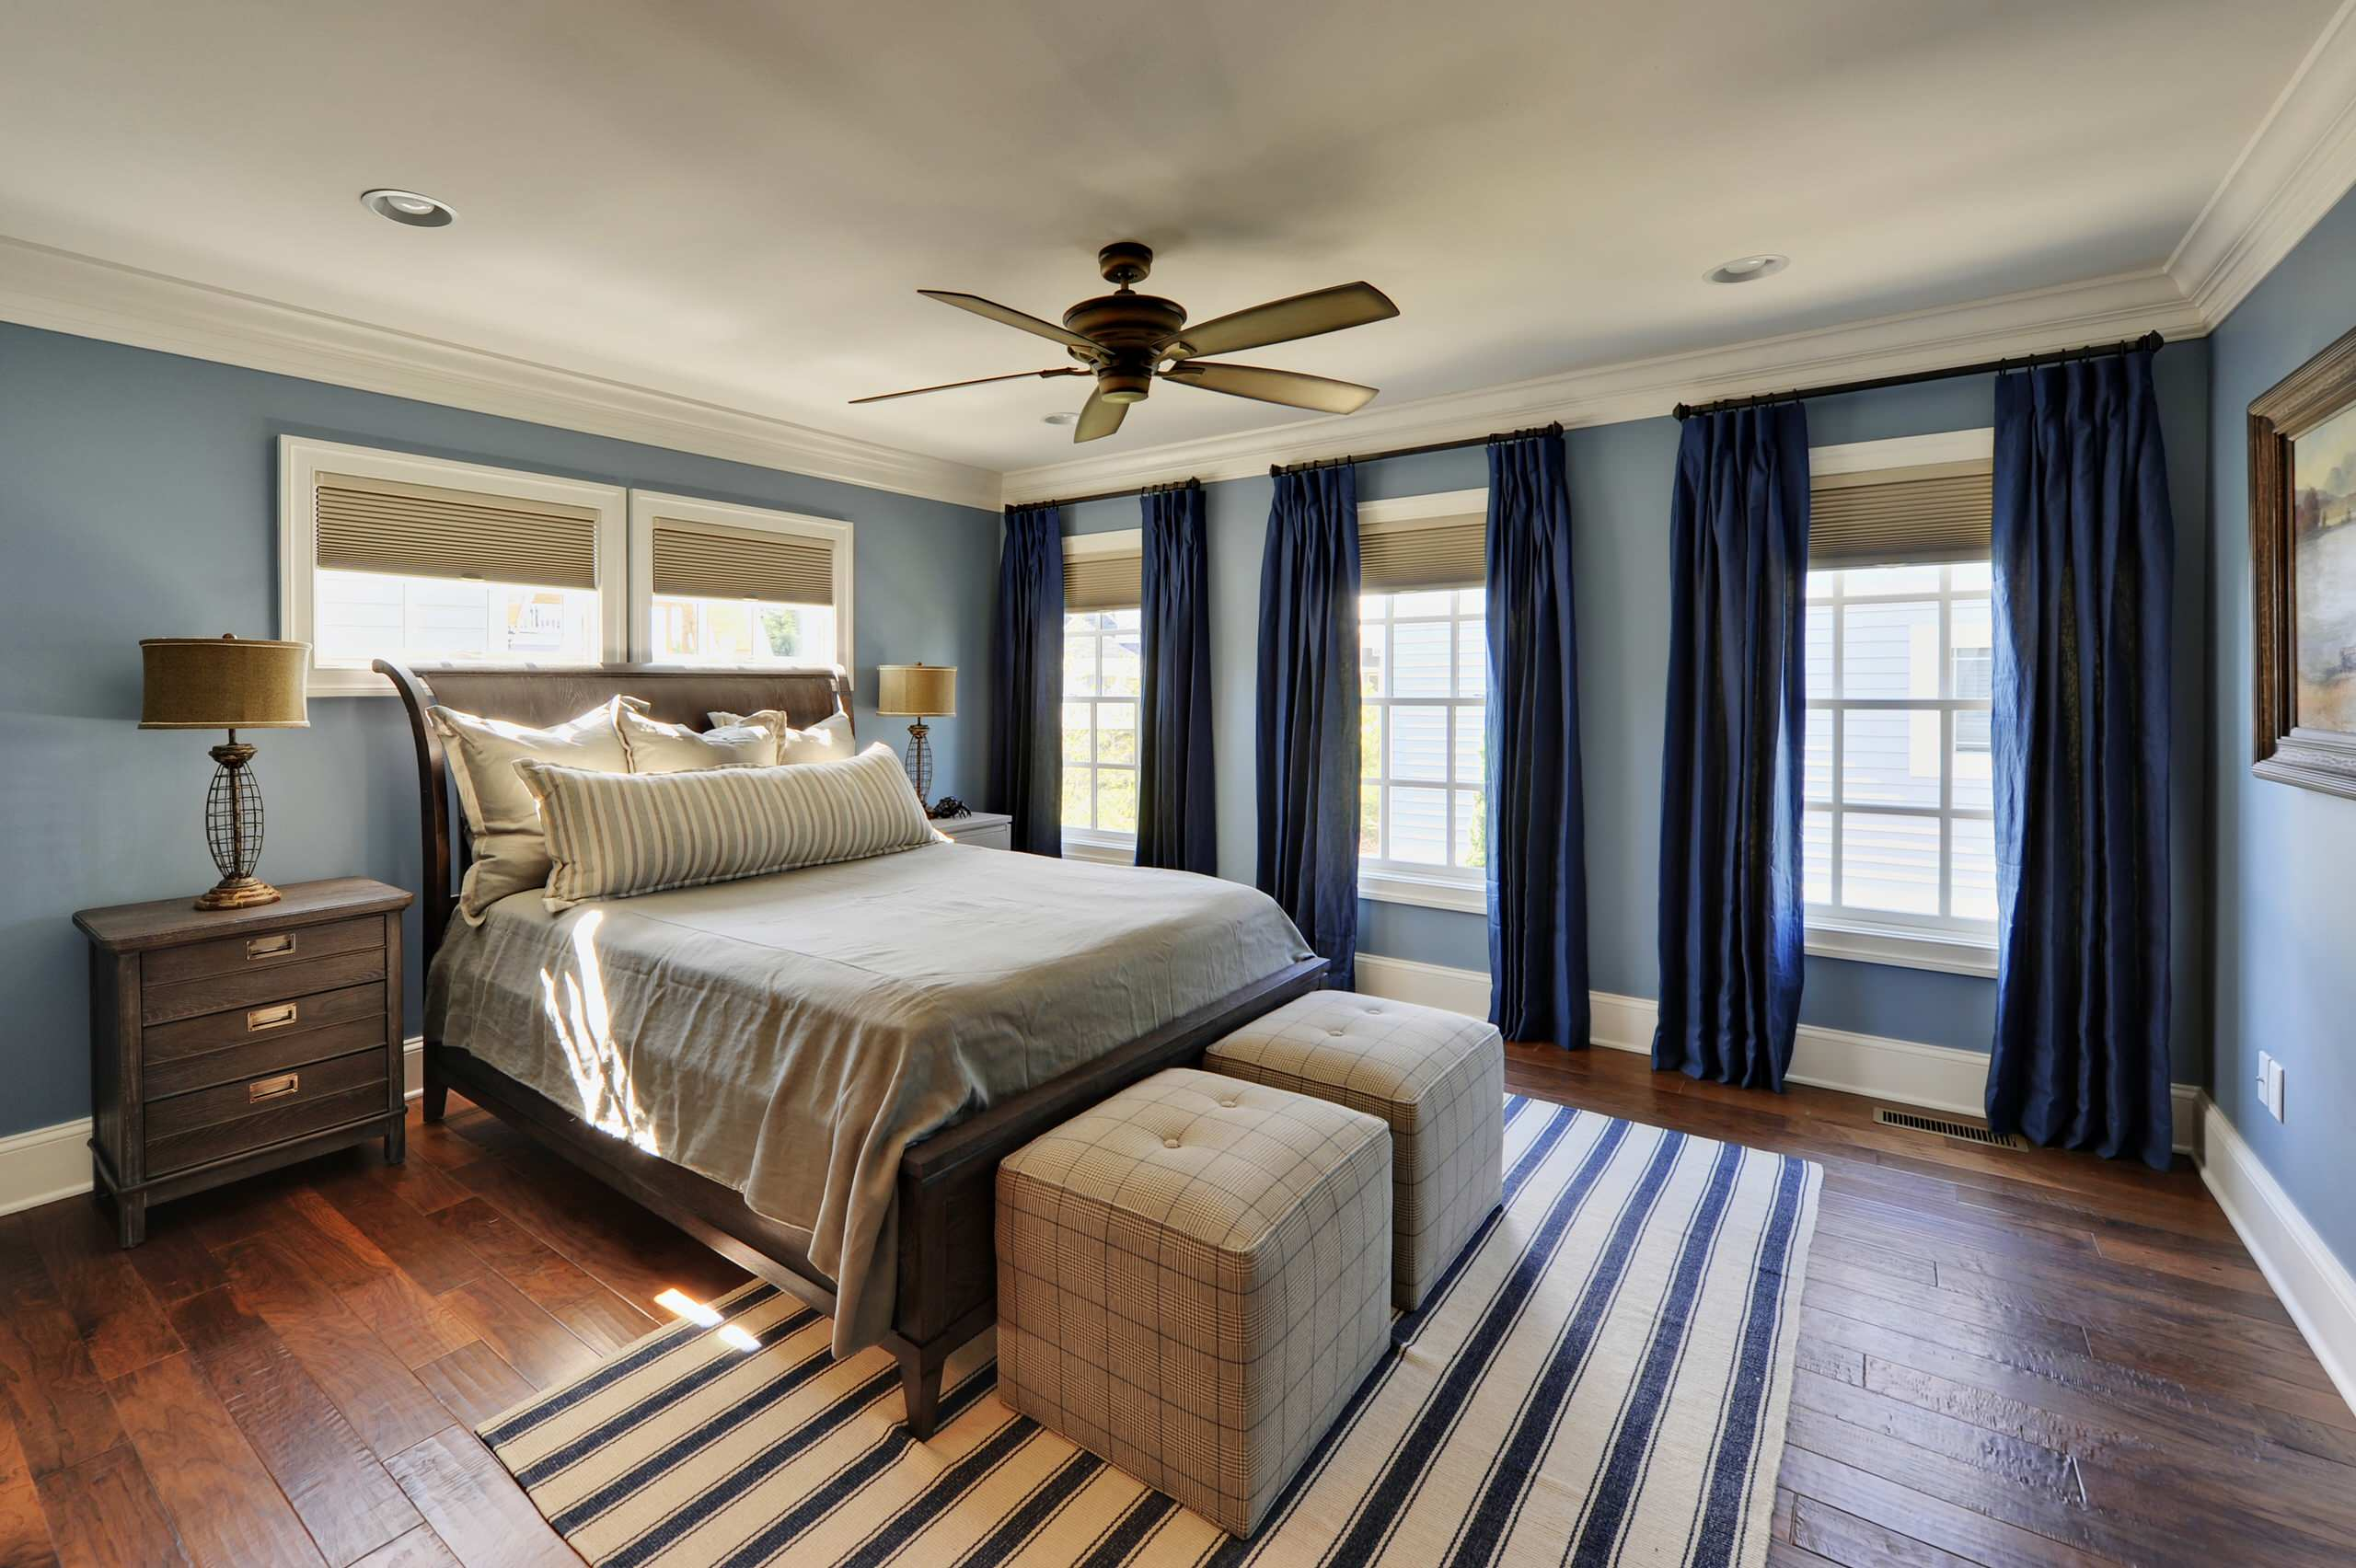 Wall To Wall Curtains | Houzz